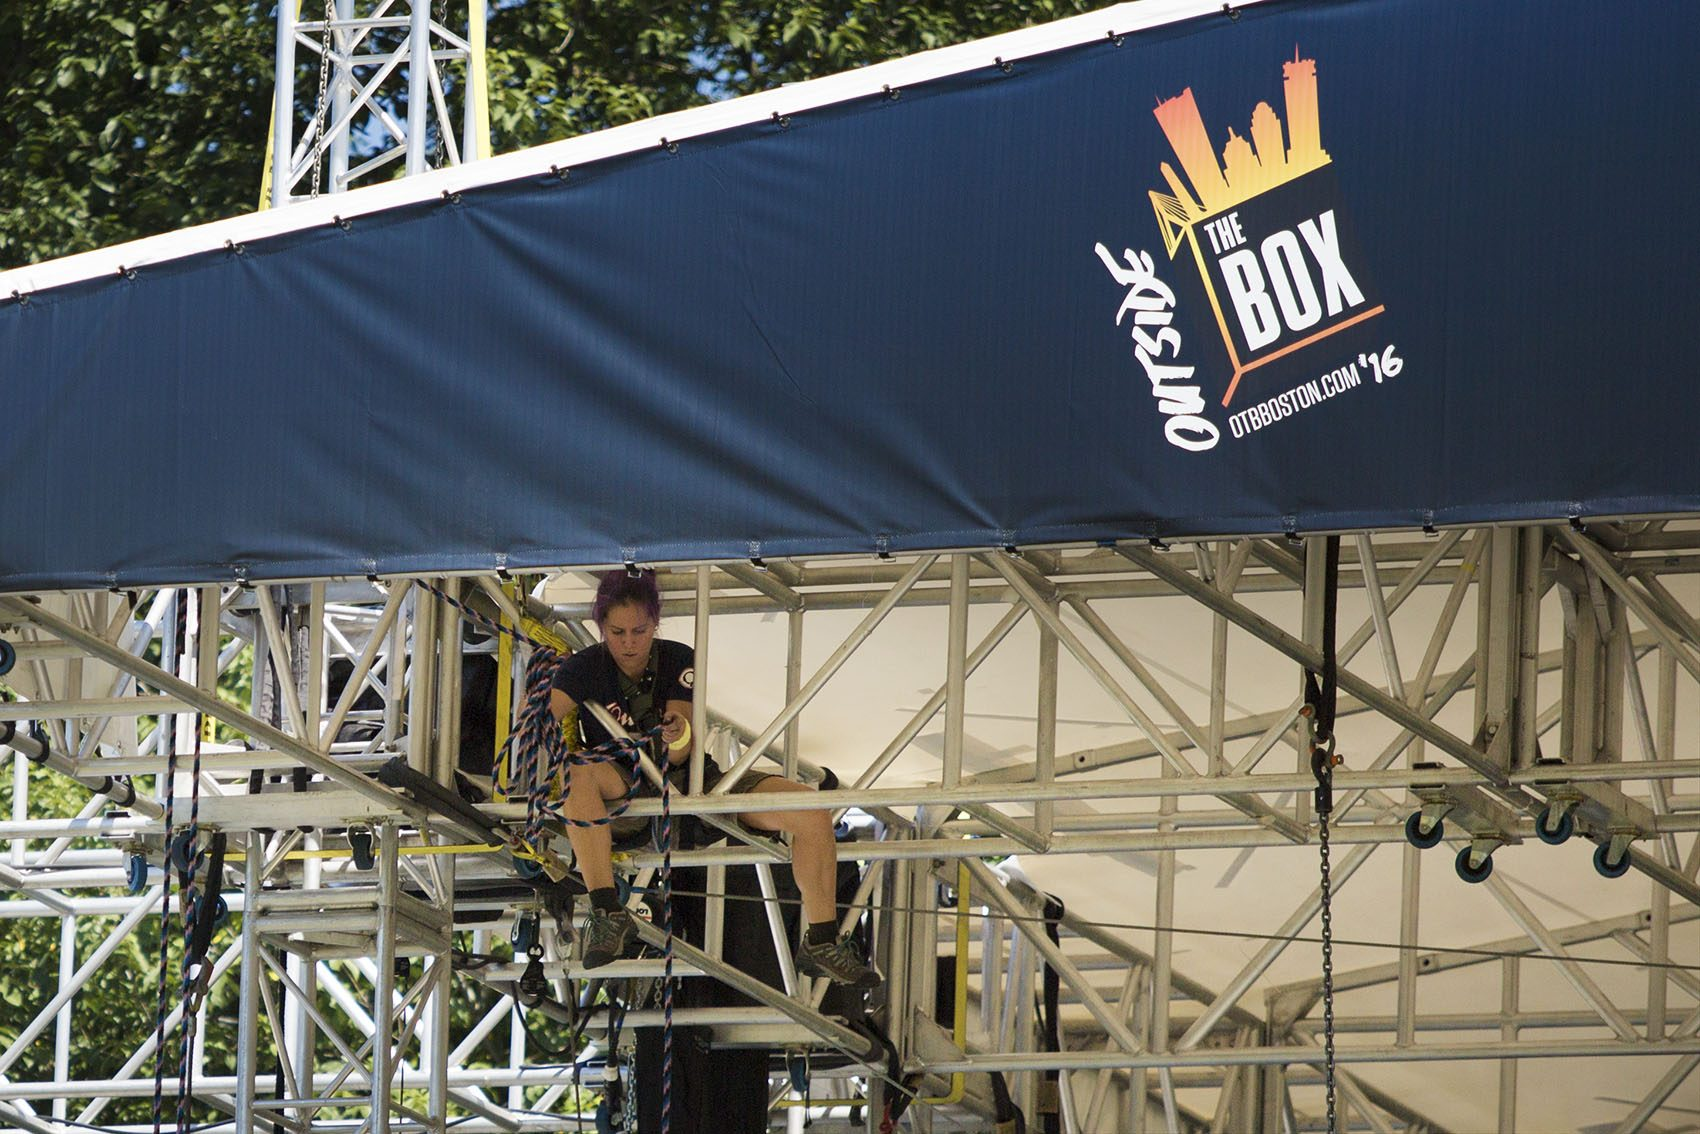 A worker prepares one of the venues on the Boston Common for the Outside The Box Festival. (Jesse Costa/WBUR)